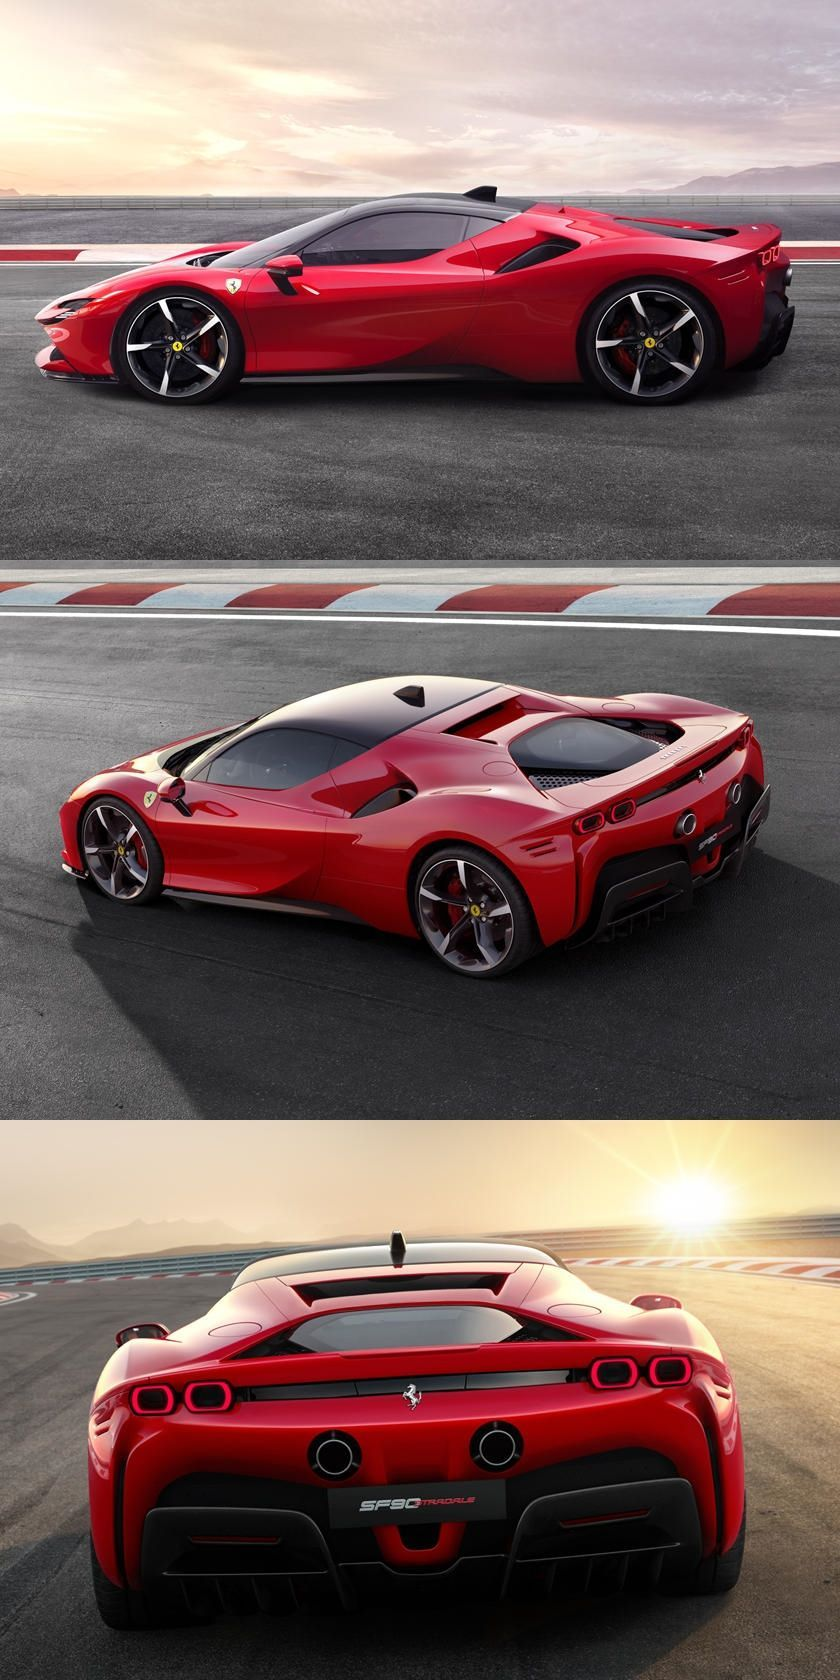 Ferrari Reminds The World Why It Builds The Best Supercars Pertaining To Recent Times Rolls Royce Is Still Regarded As In 2020 Super Cars Ferrari Car Ferrari Poster